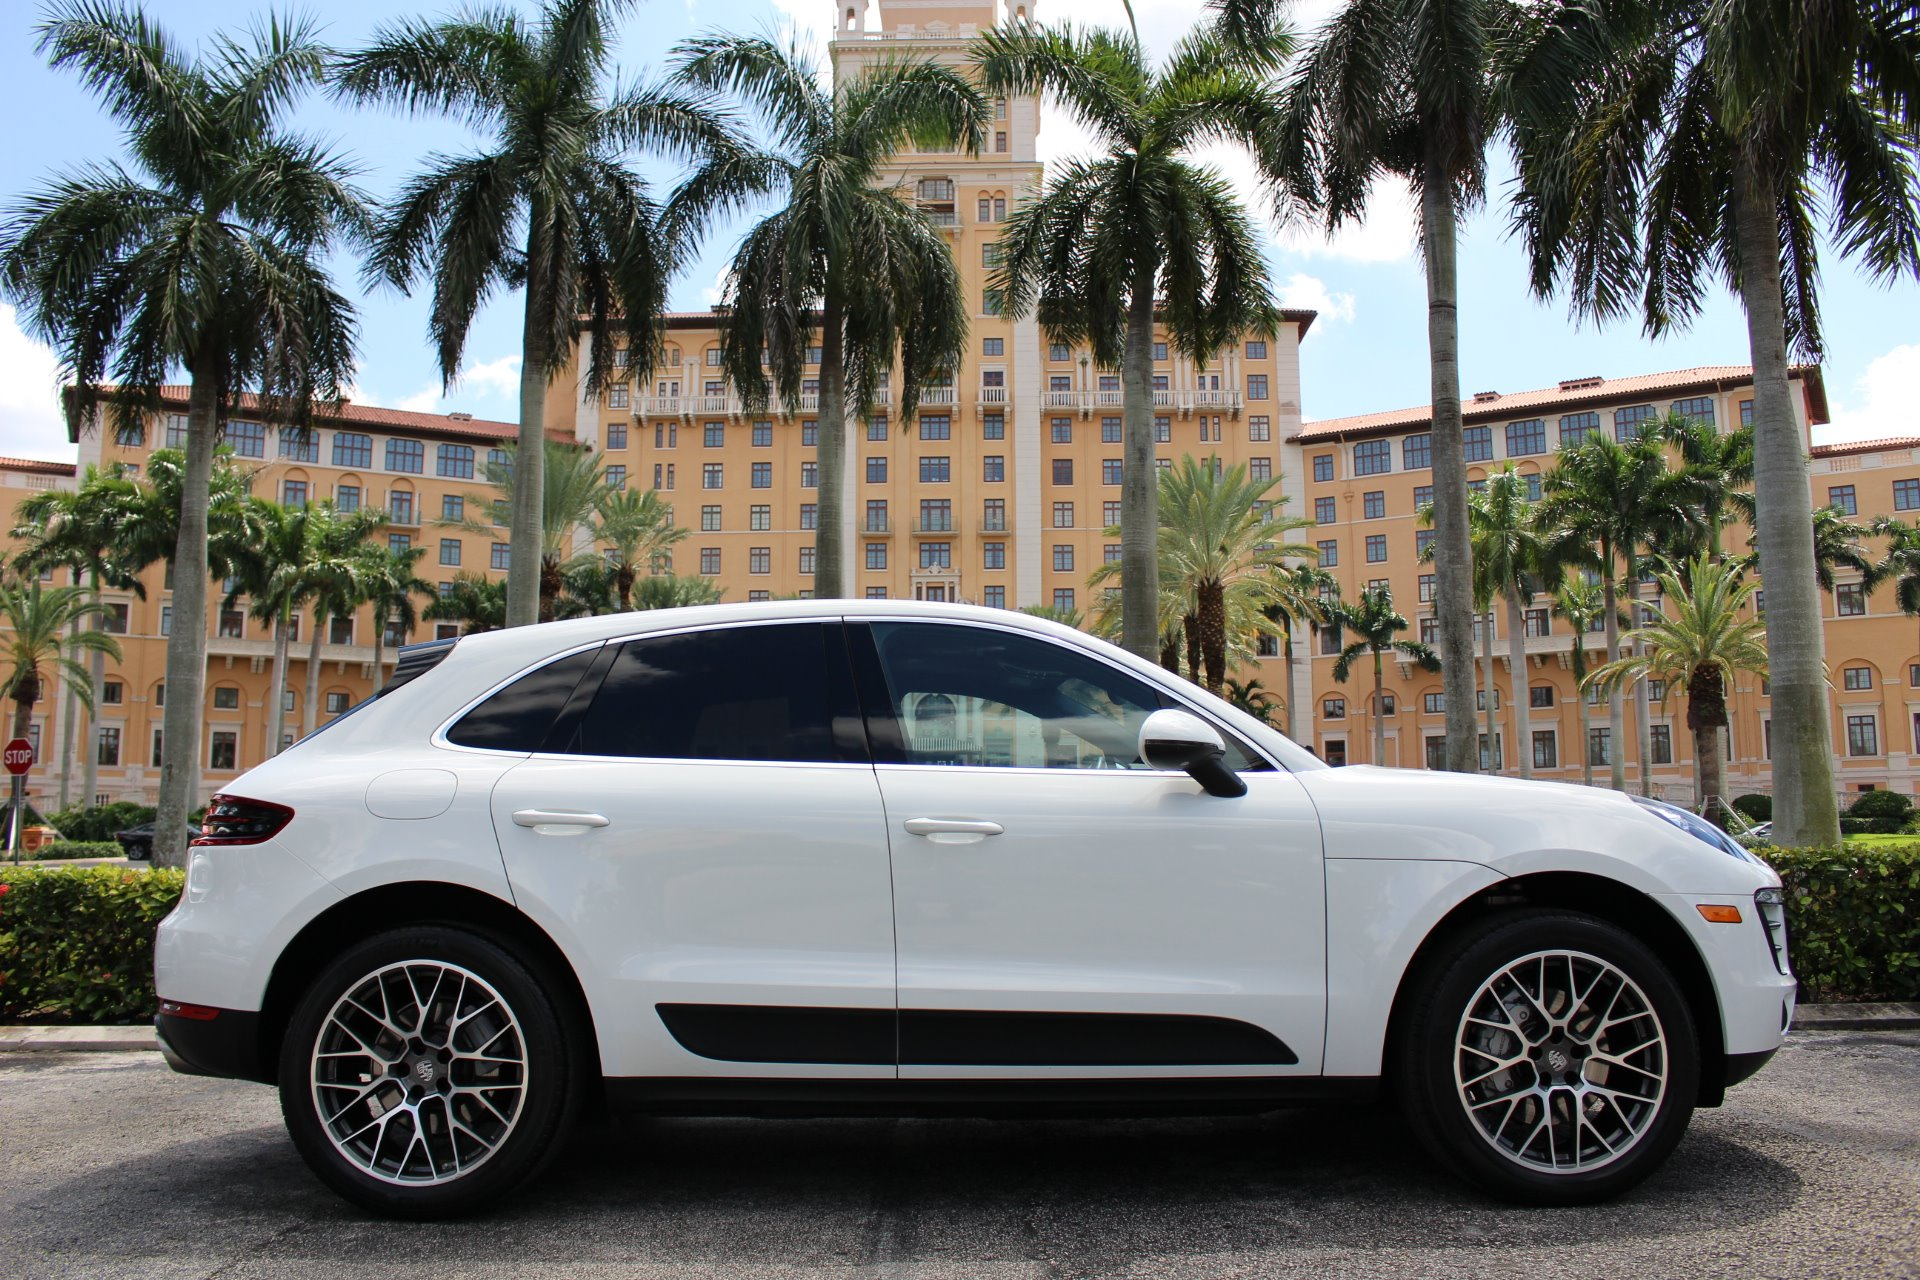 Used 2016 Porsche Macan S for sale Sold at The Gables Sports Cars in Miami FL 33146 1